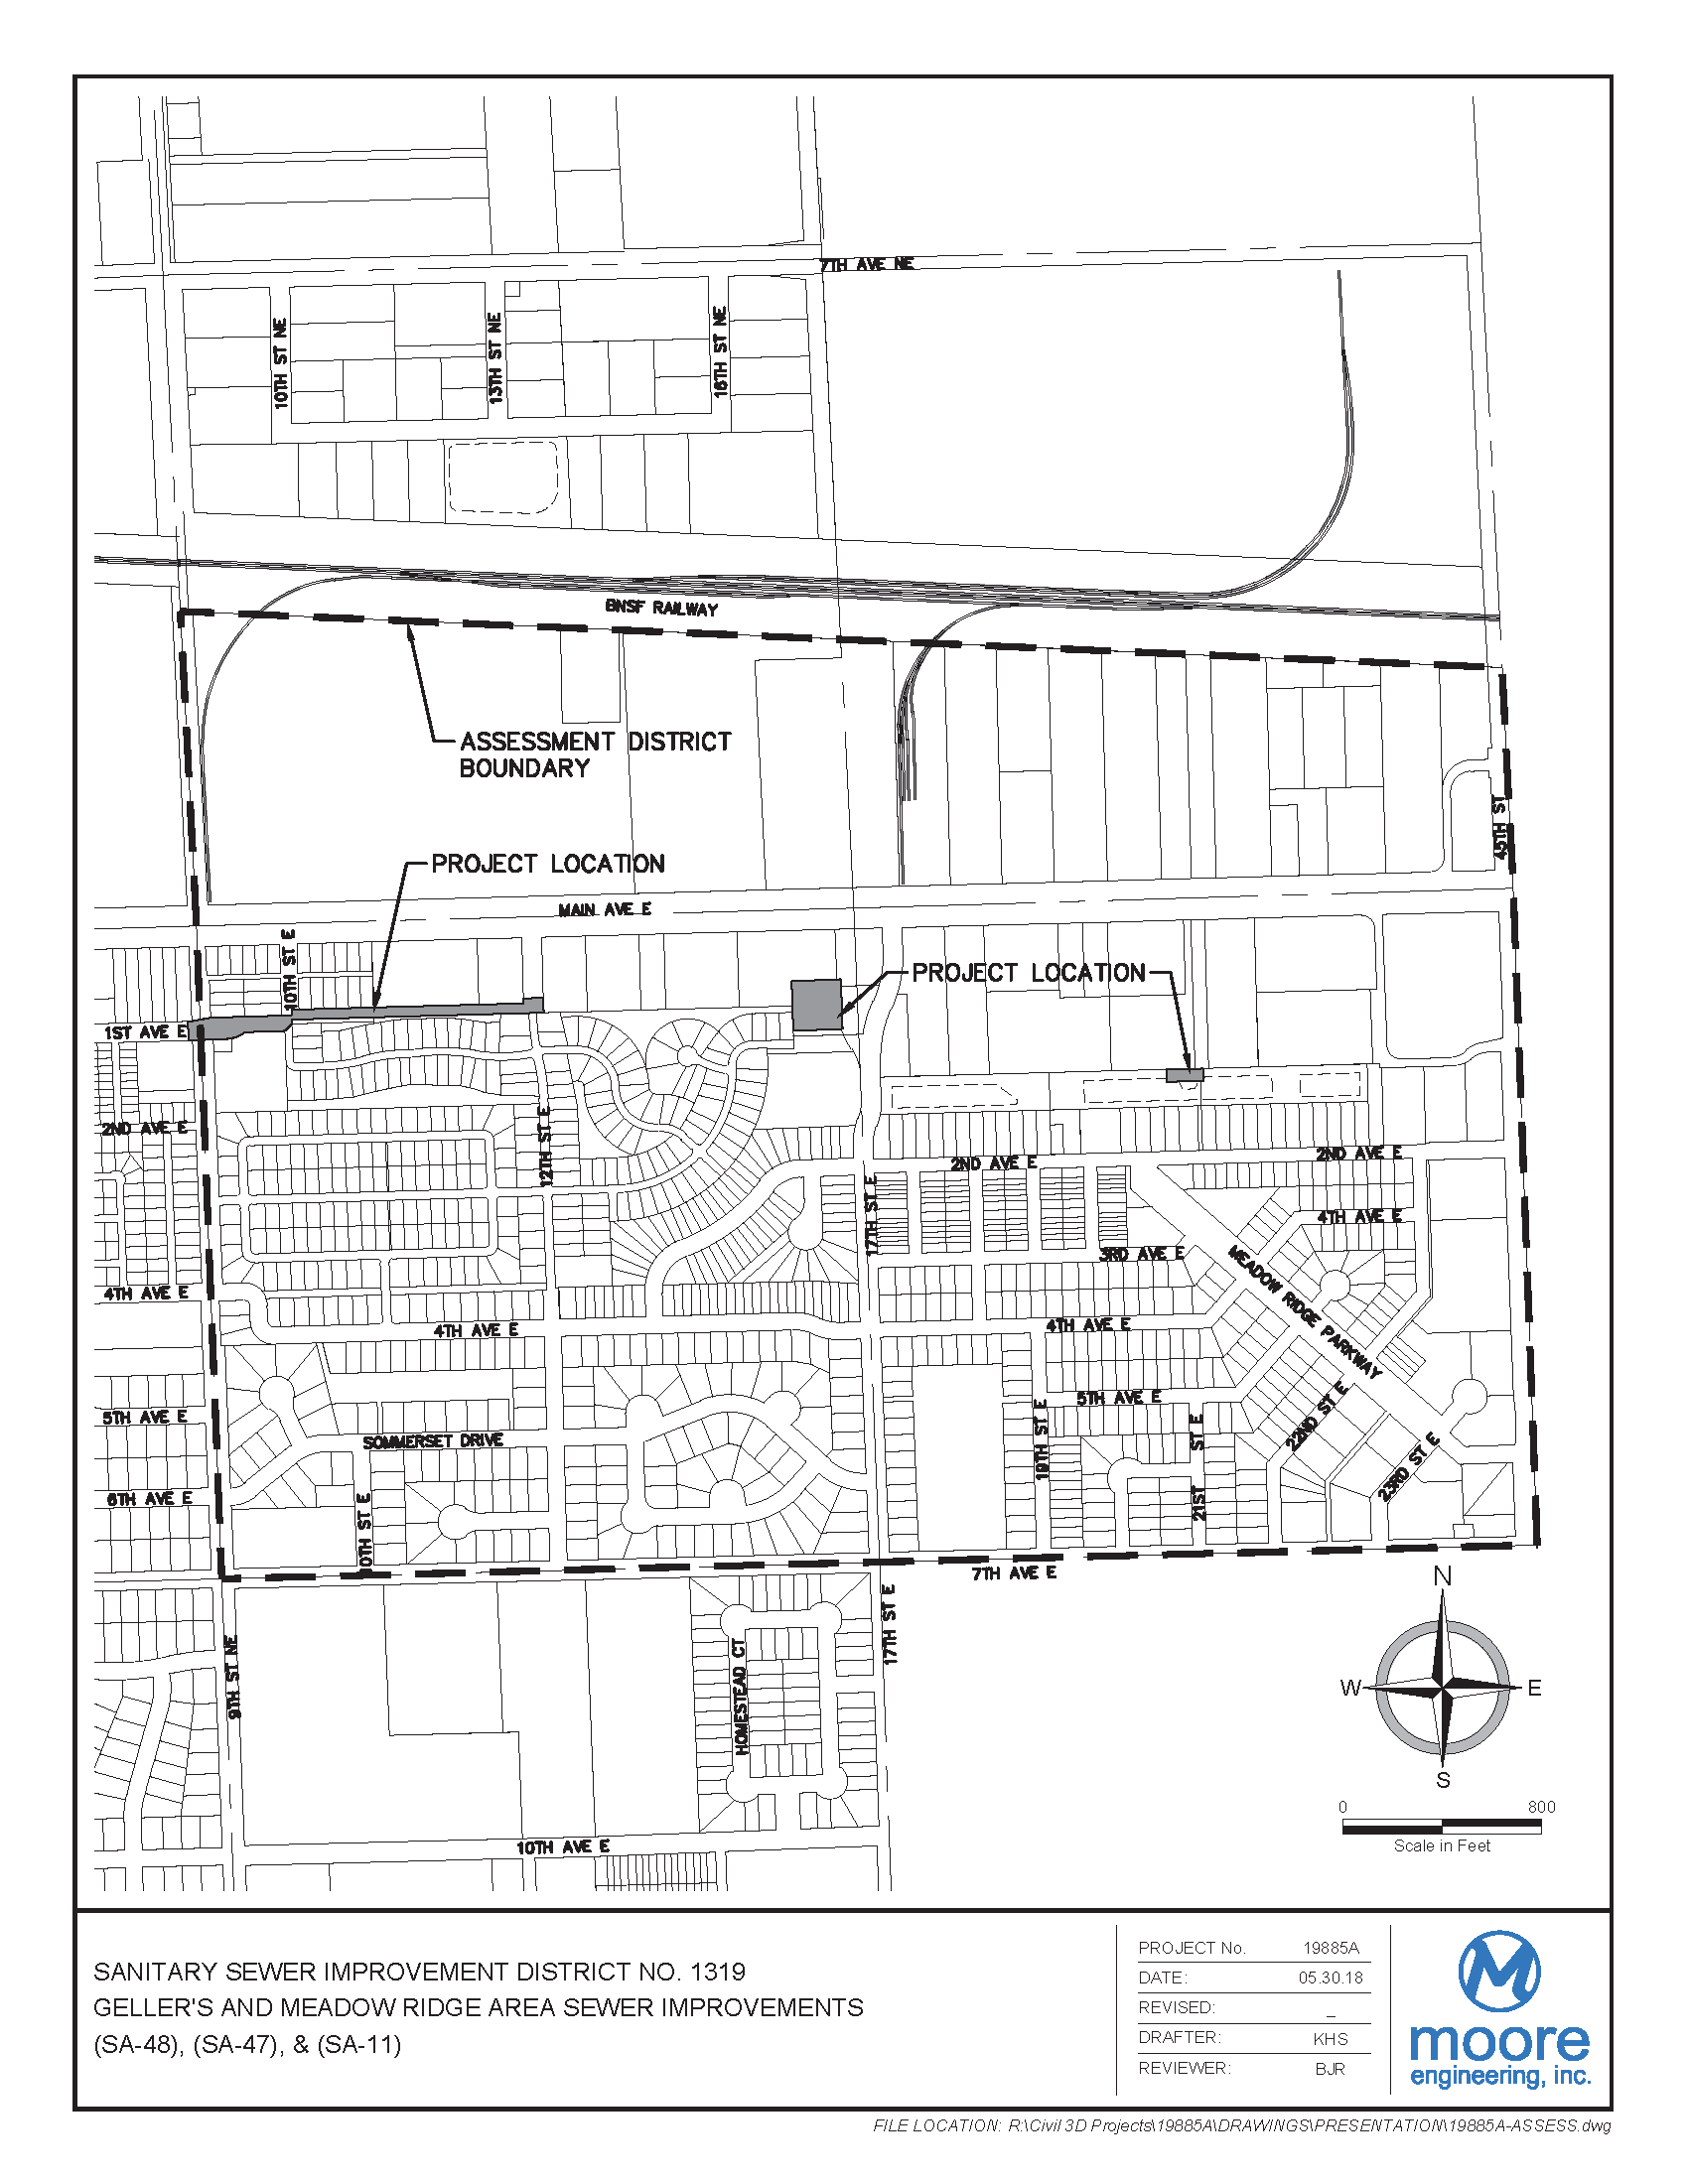 District No. 1319 Geller's and Meadow Ridge Area Sewer Improvements Assessment District Boundary